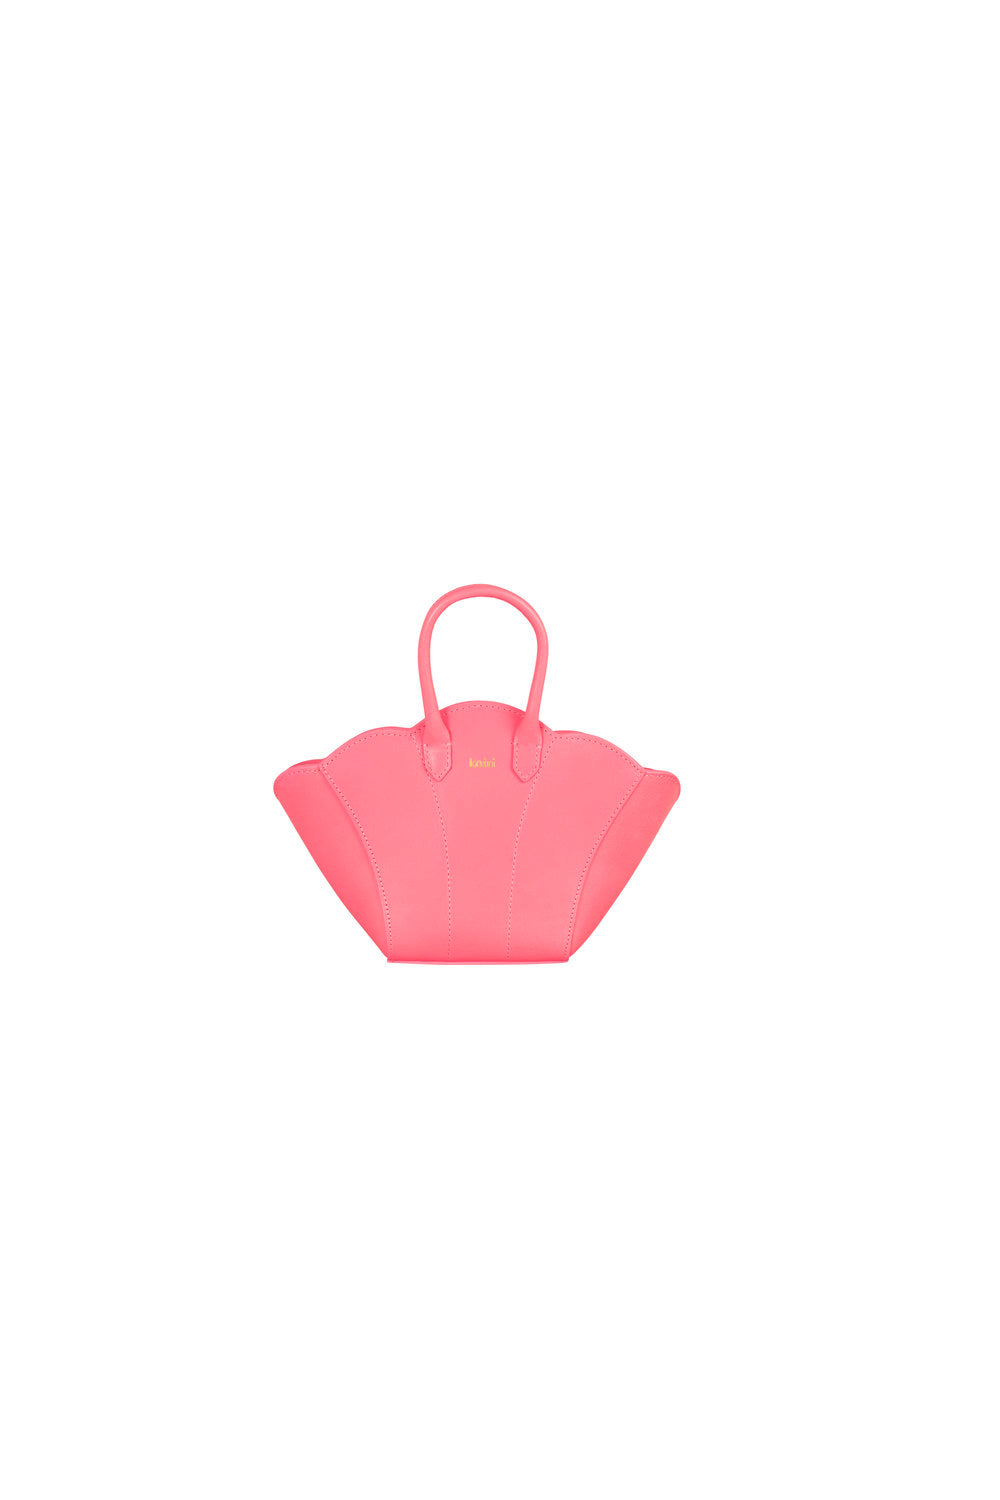 Mini Shellbag - coral pink